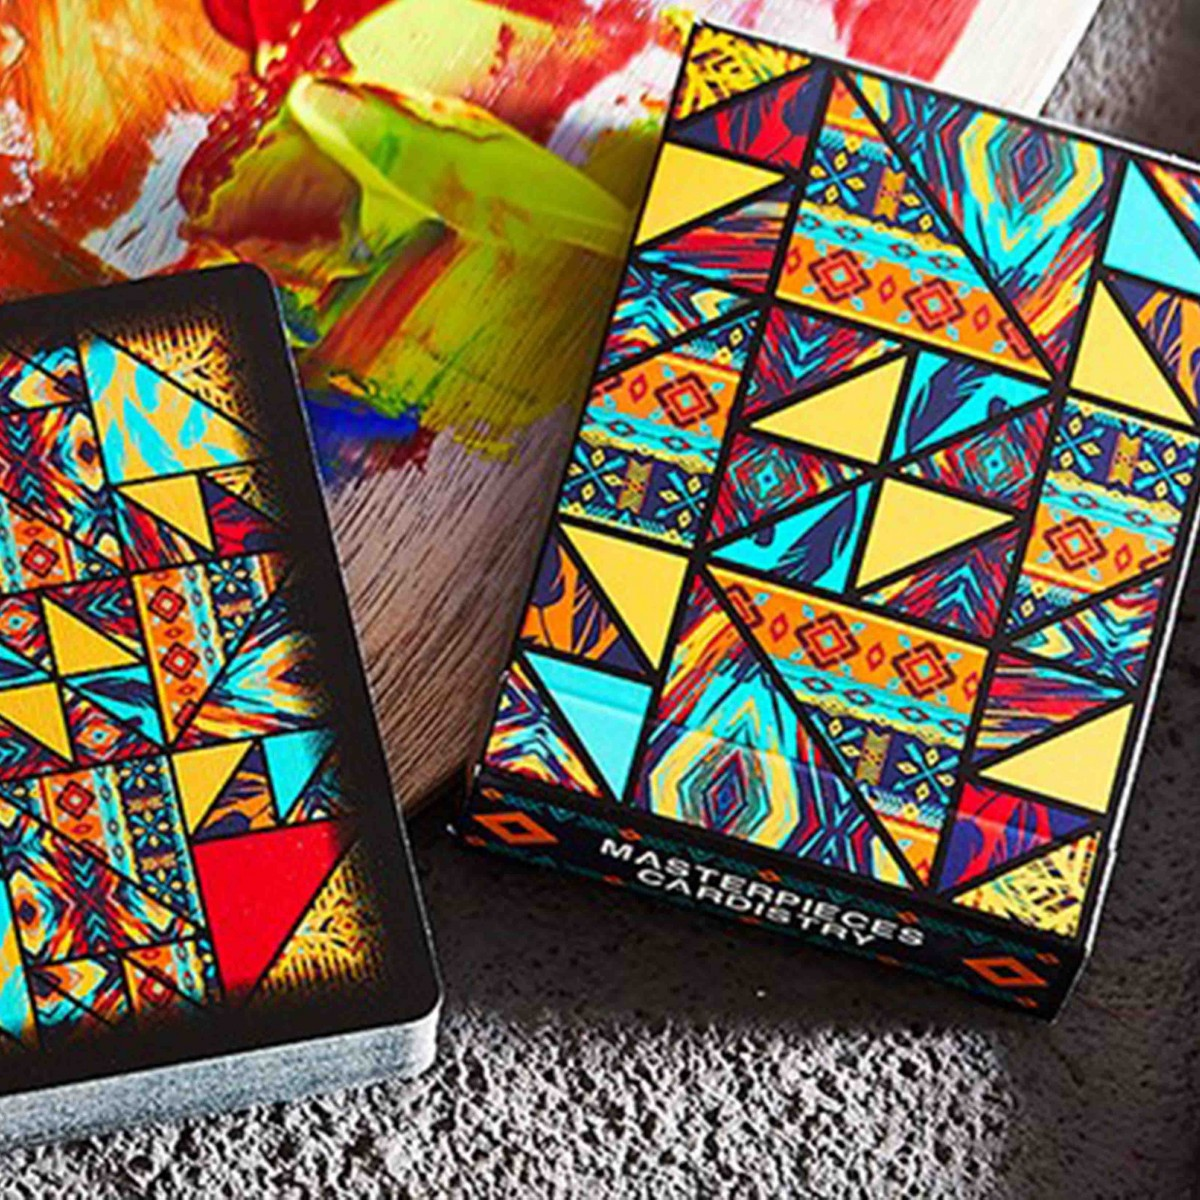 Masterpieces Cardistry playing cards